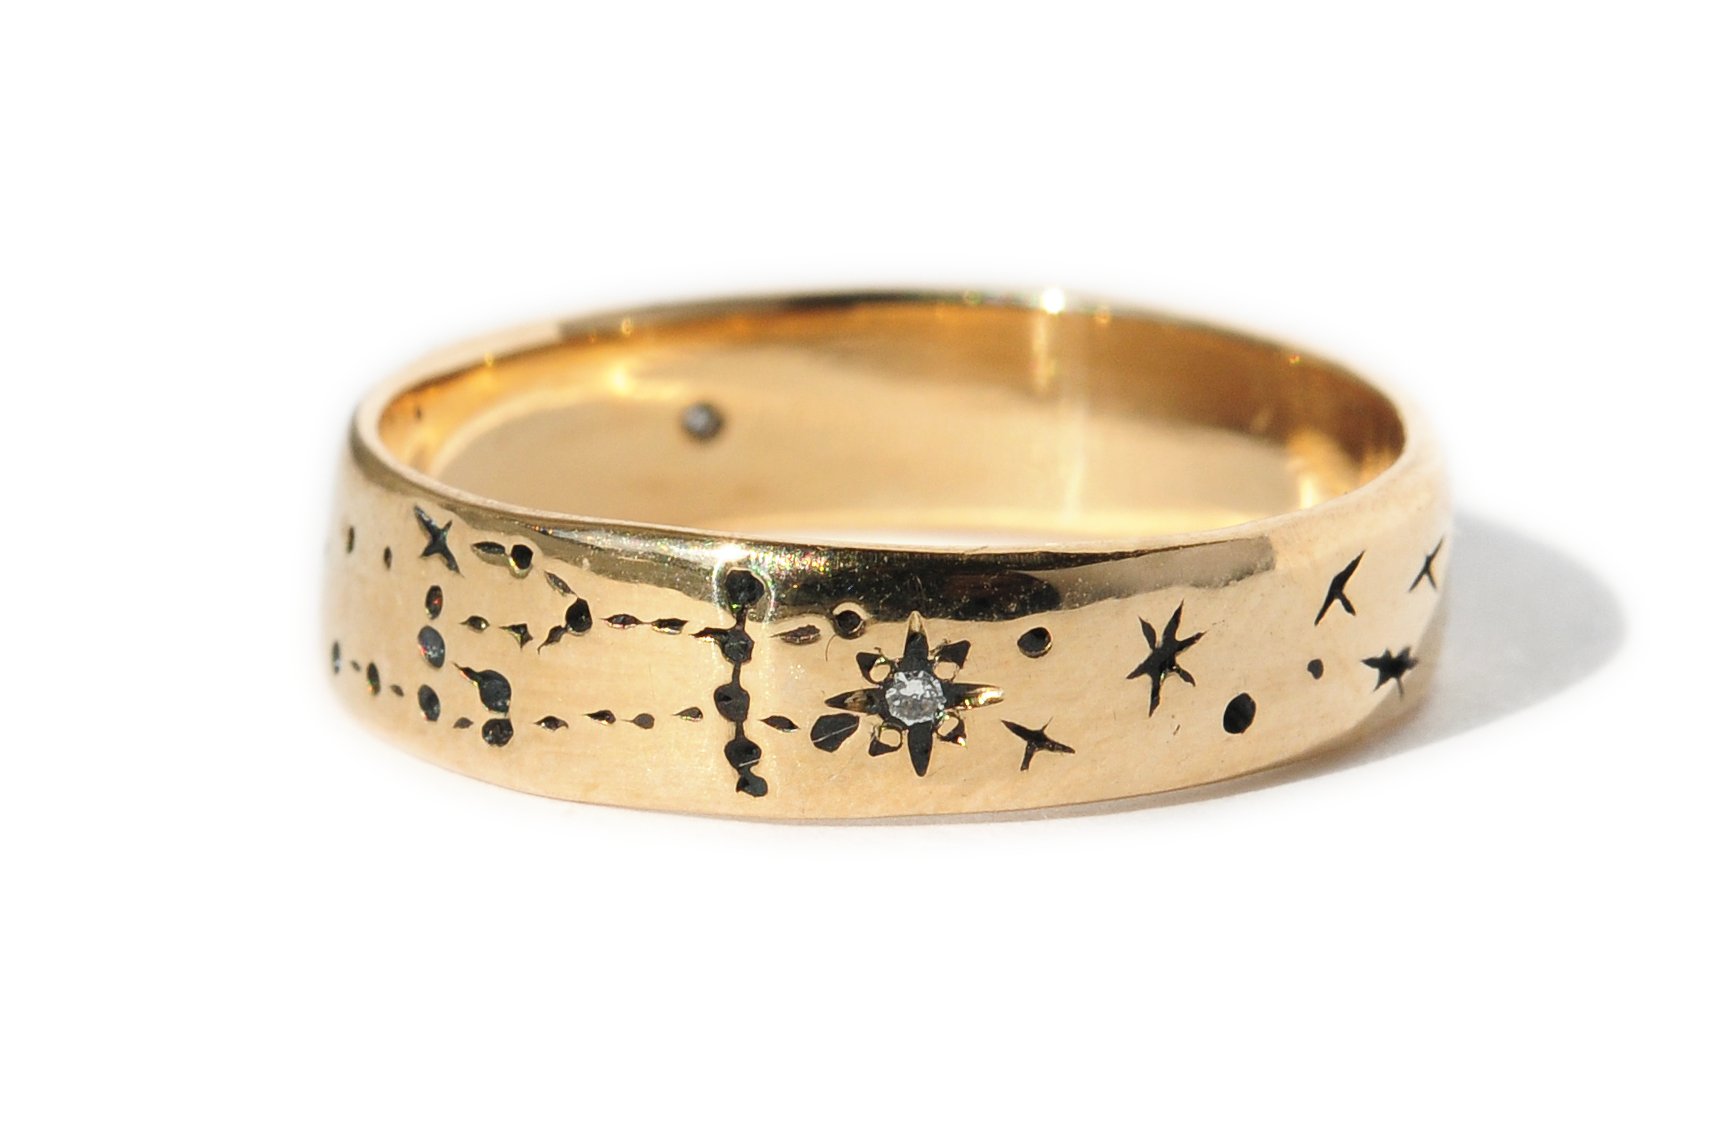 It is a graphic of Alternative Wedding Rings for the Ultimate Non-Traditional